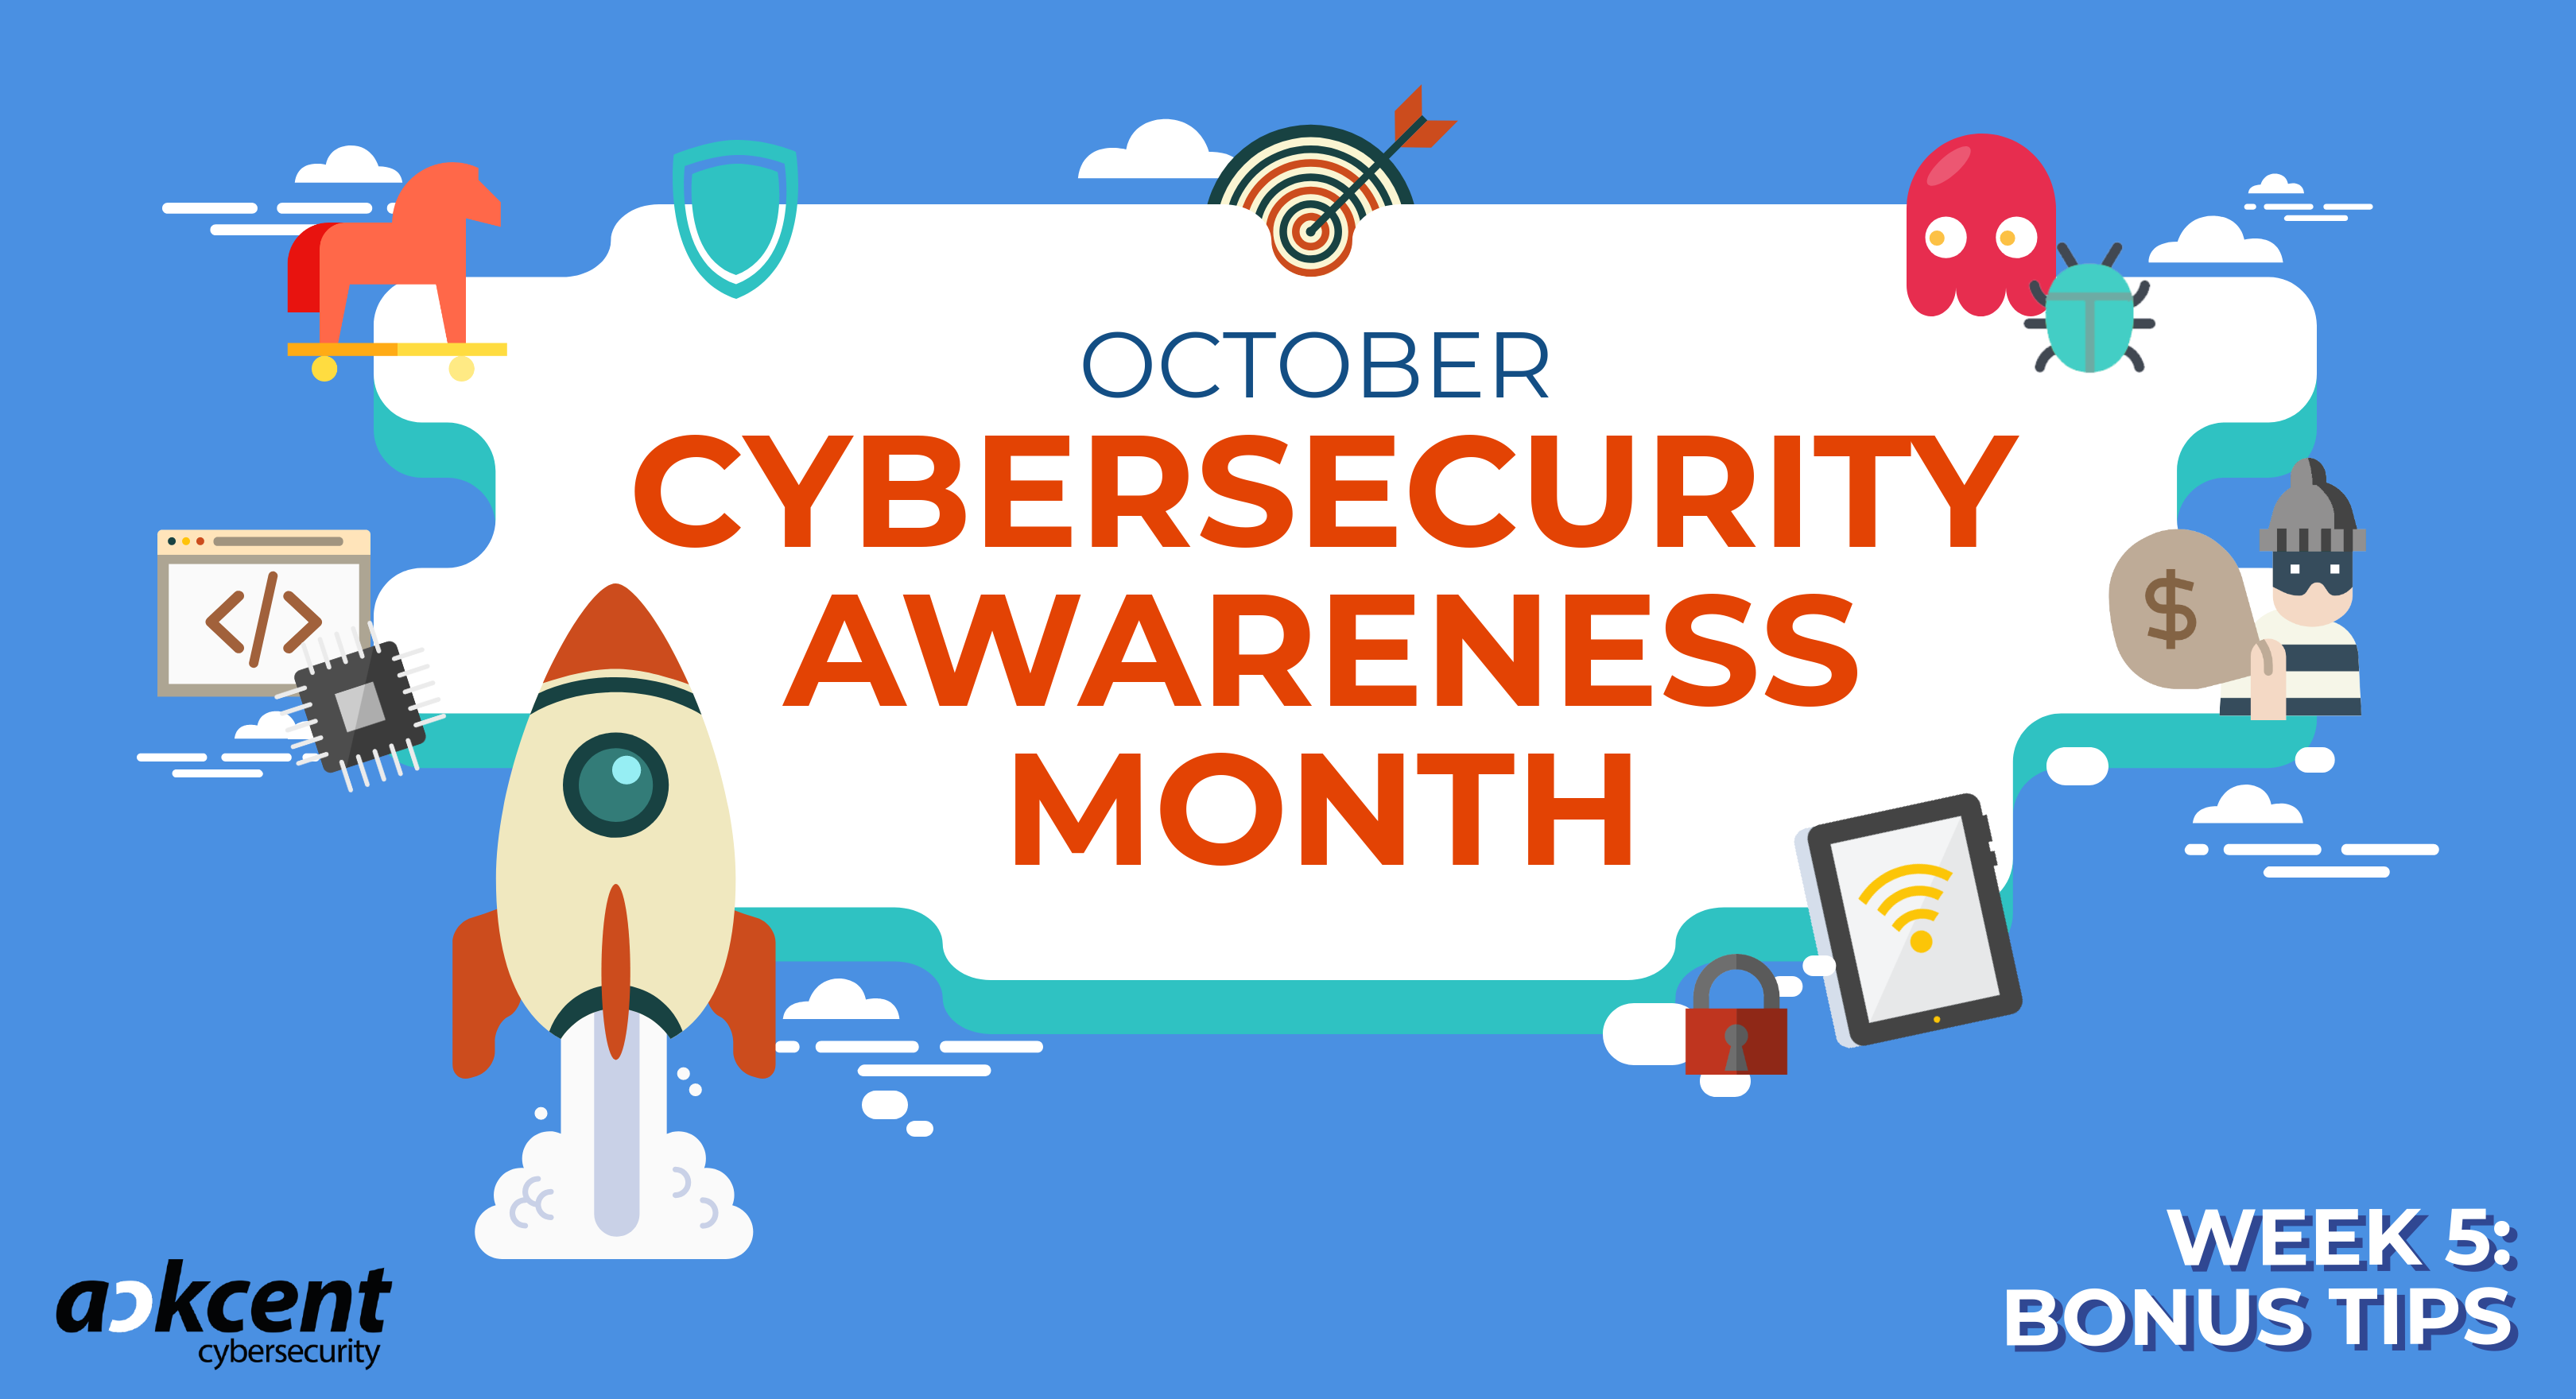 Let's conclude Cybersecurity Awareness Month with some bonus tips!